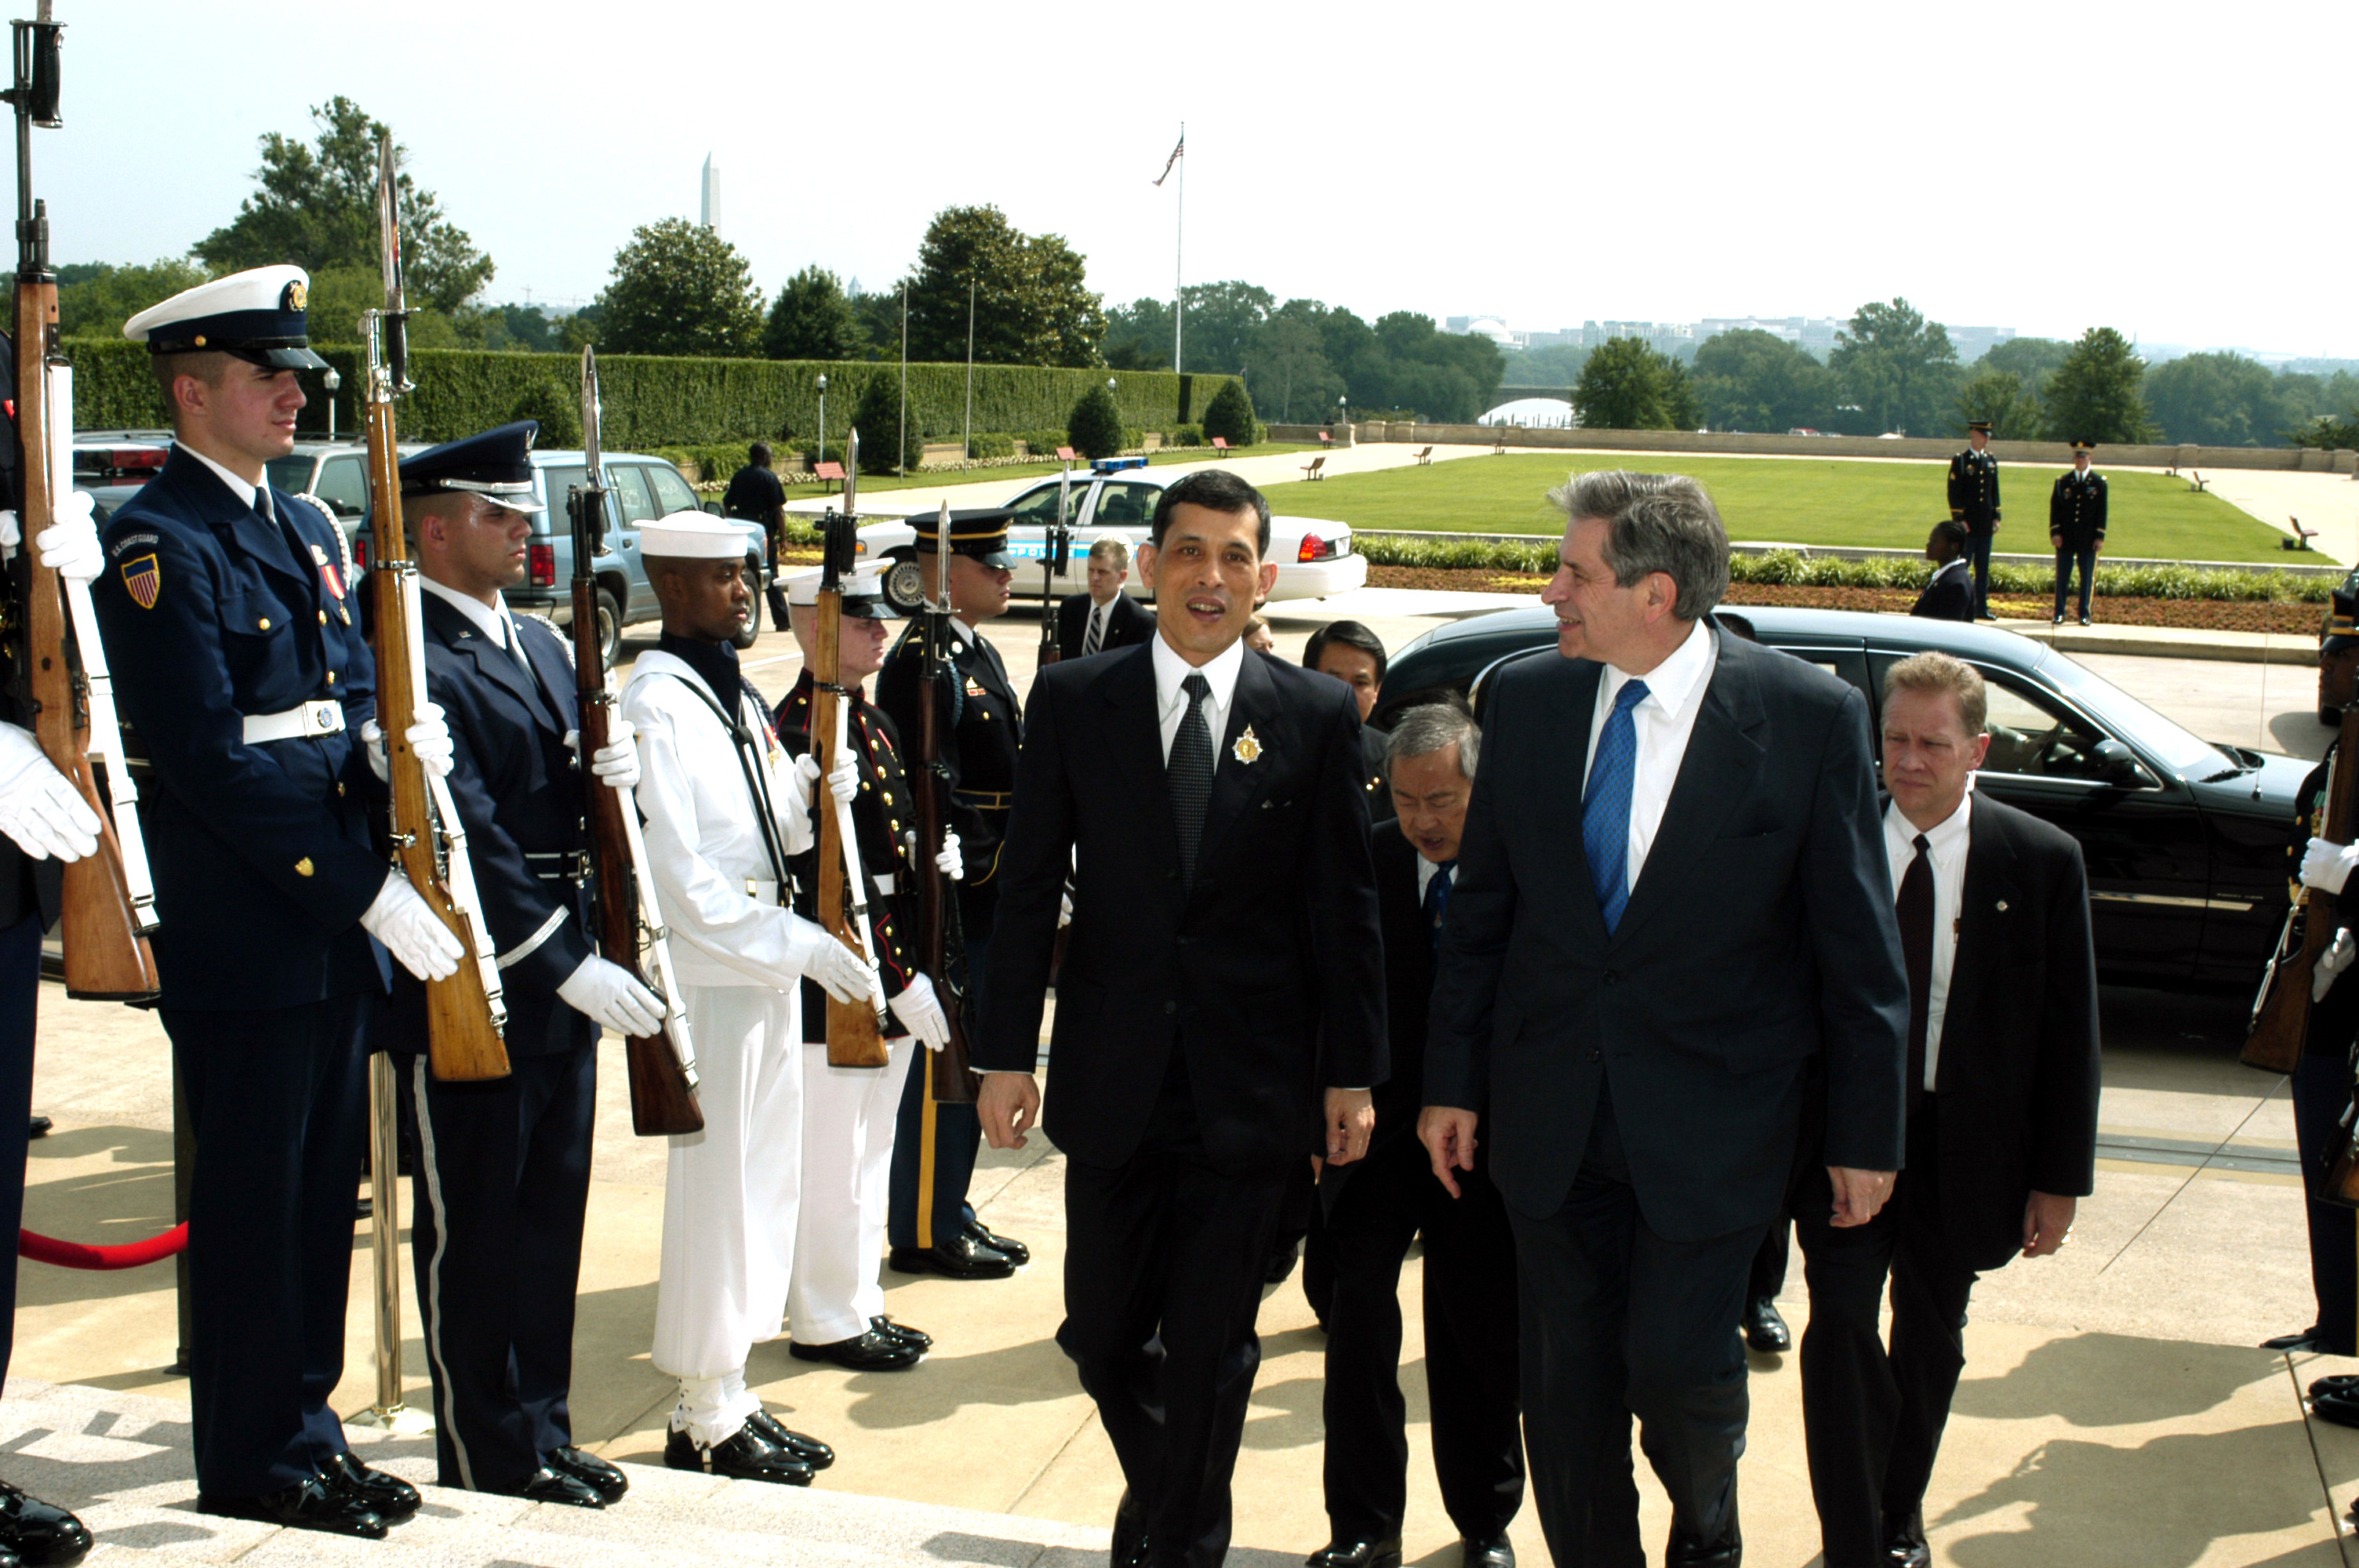 030612-D-2987S-002.Deputy Secretary of Defense Paul Wolfowitz (right) escorts Thailand's Crown Prince Maha Vajiralongkorn through an honor cordon and into the Pentagon on June 12, 2003. Wolfowitz and the Prince will meet to discuss a range of bilateral security issues and the global war on terror. DoD photo by Helene C. Stikkel. (Released) .